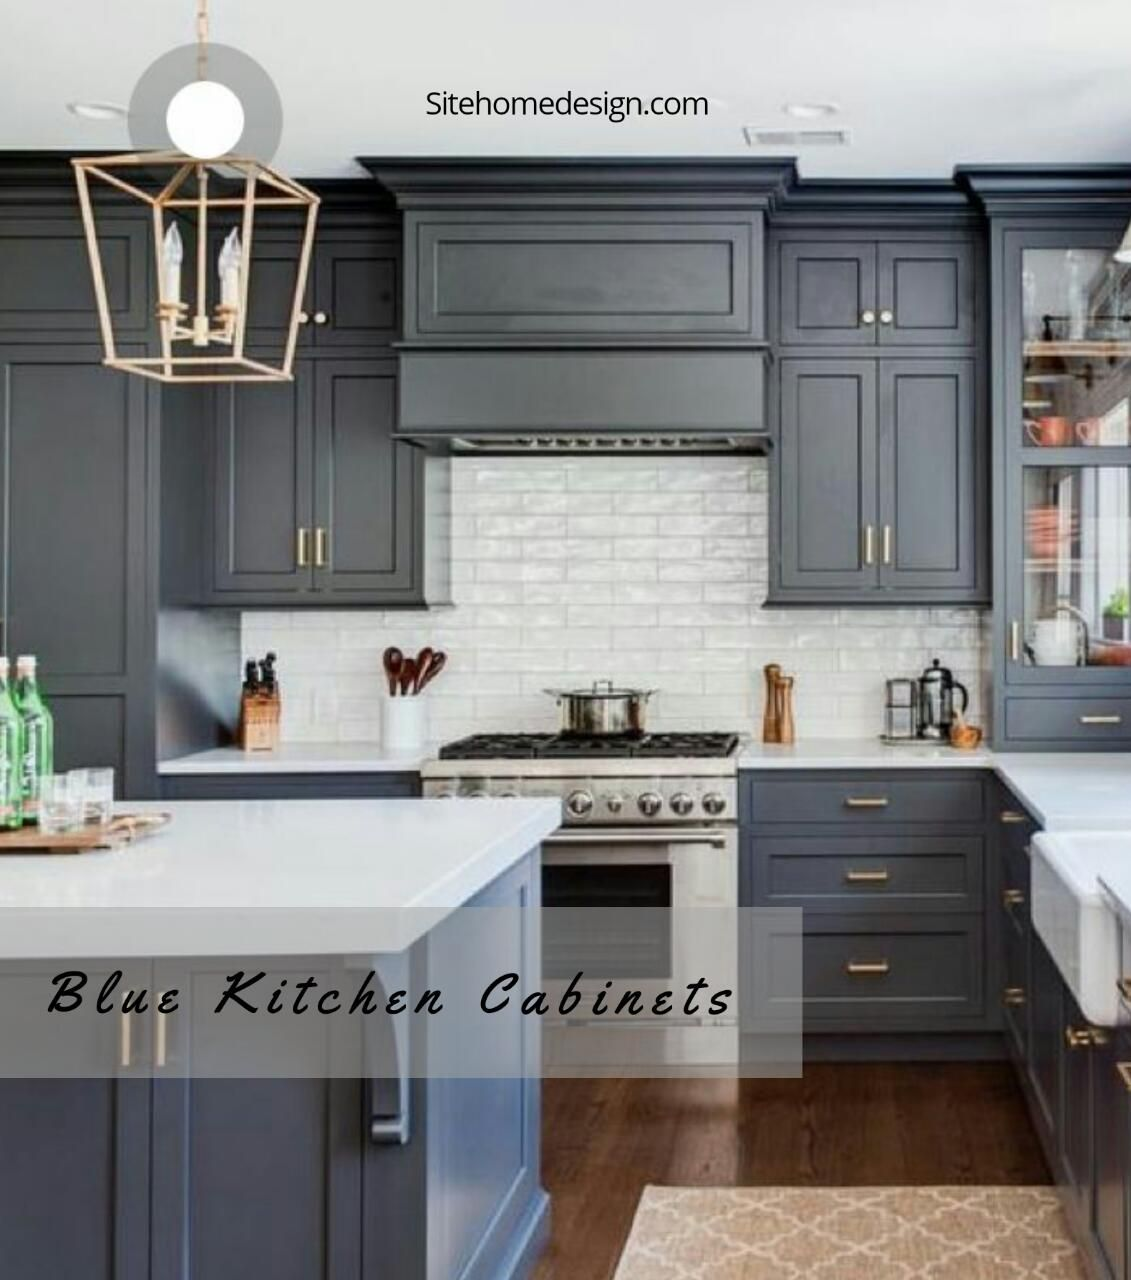 Grey Distressed Kitchen Cabinets: 31 Lovely Blue Kitchen Closet Ideas